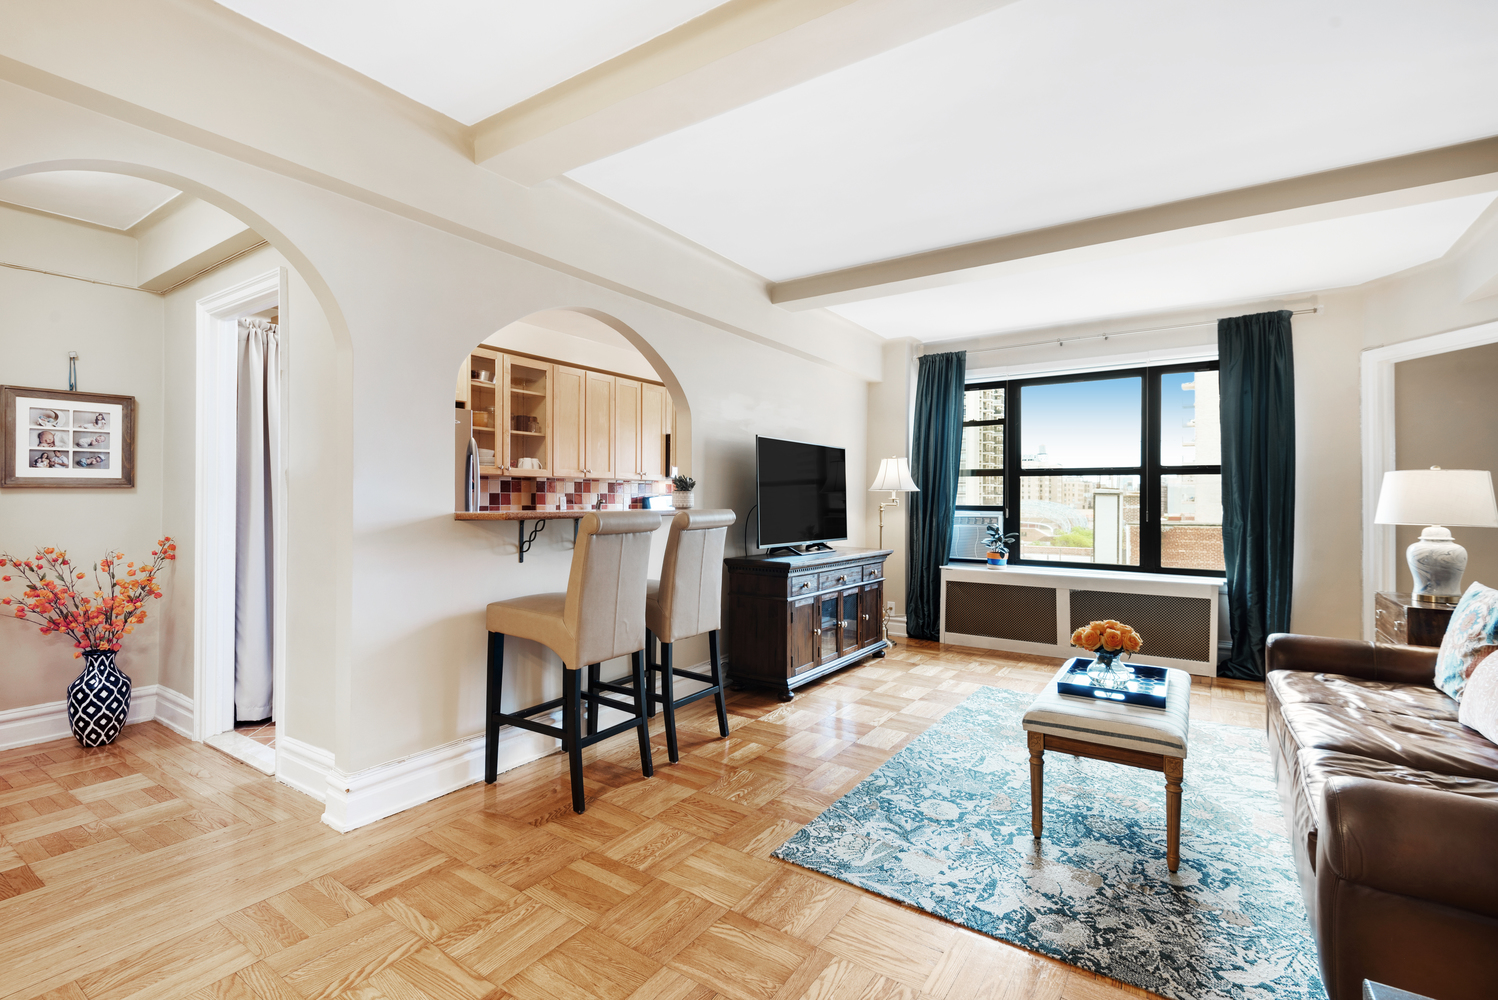 CSG_35_West_92nd_Street_9F_New_York_NY_Corcoran_-_Package_of_4_Property_Photos_1_20190521-104636.jpg